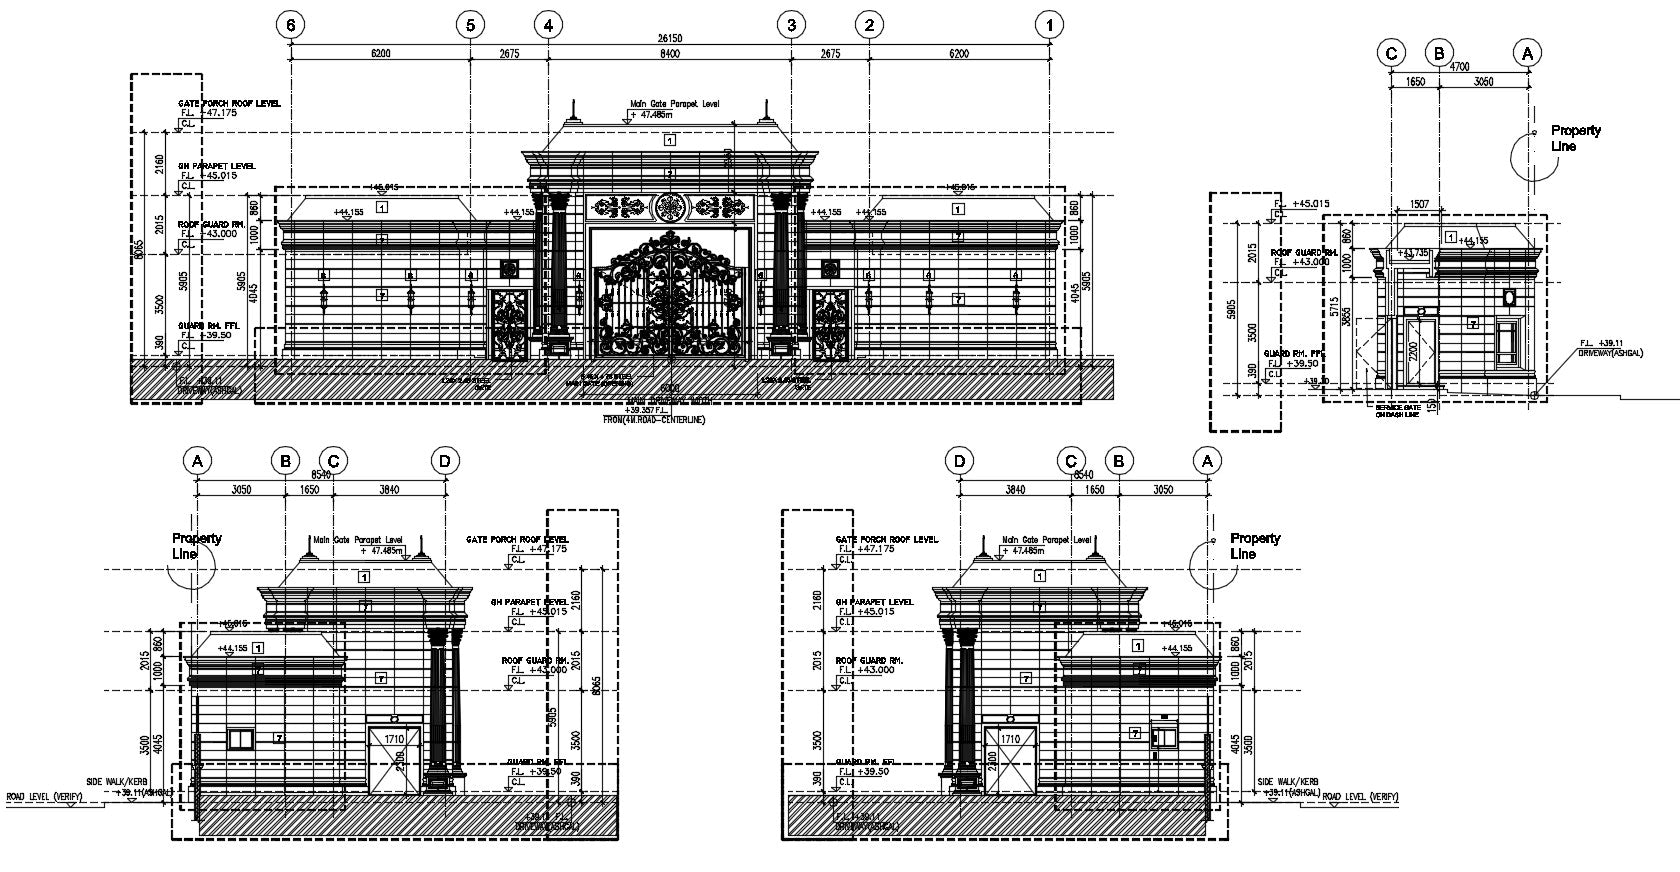 Main Gate Structure detail. FLOORING LAYOUT PLAN, INSIDE (REAR) ELEVATION, SECTION A-A, RIGHT SIDE ELEVATION, LEFT SIDE ELEVATION, ROOF PLAN, etc